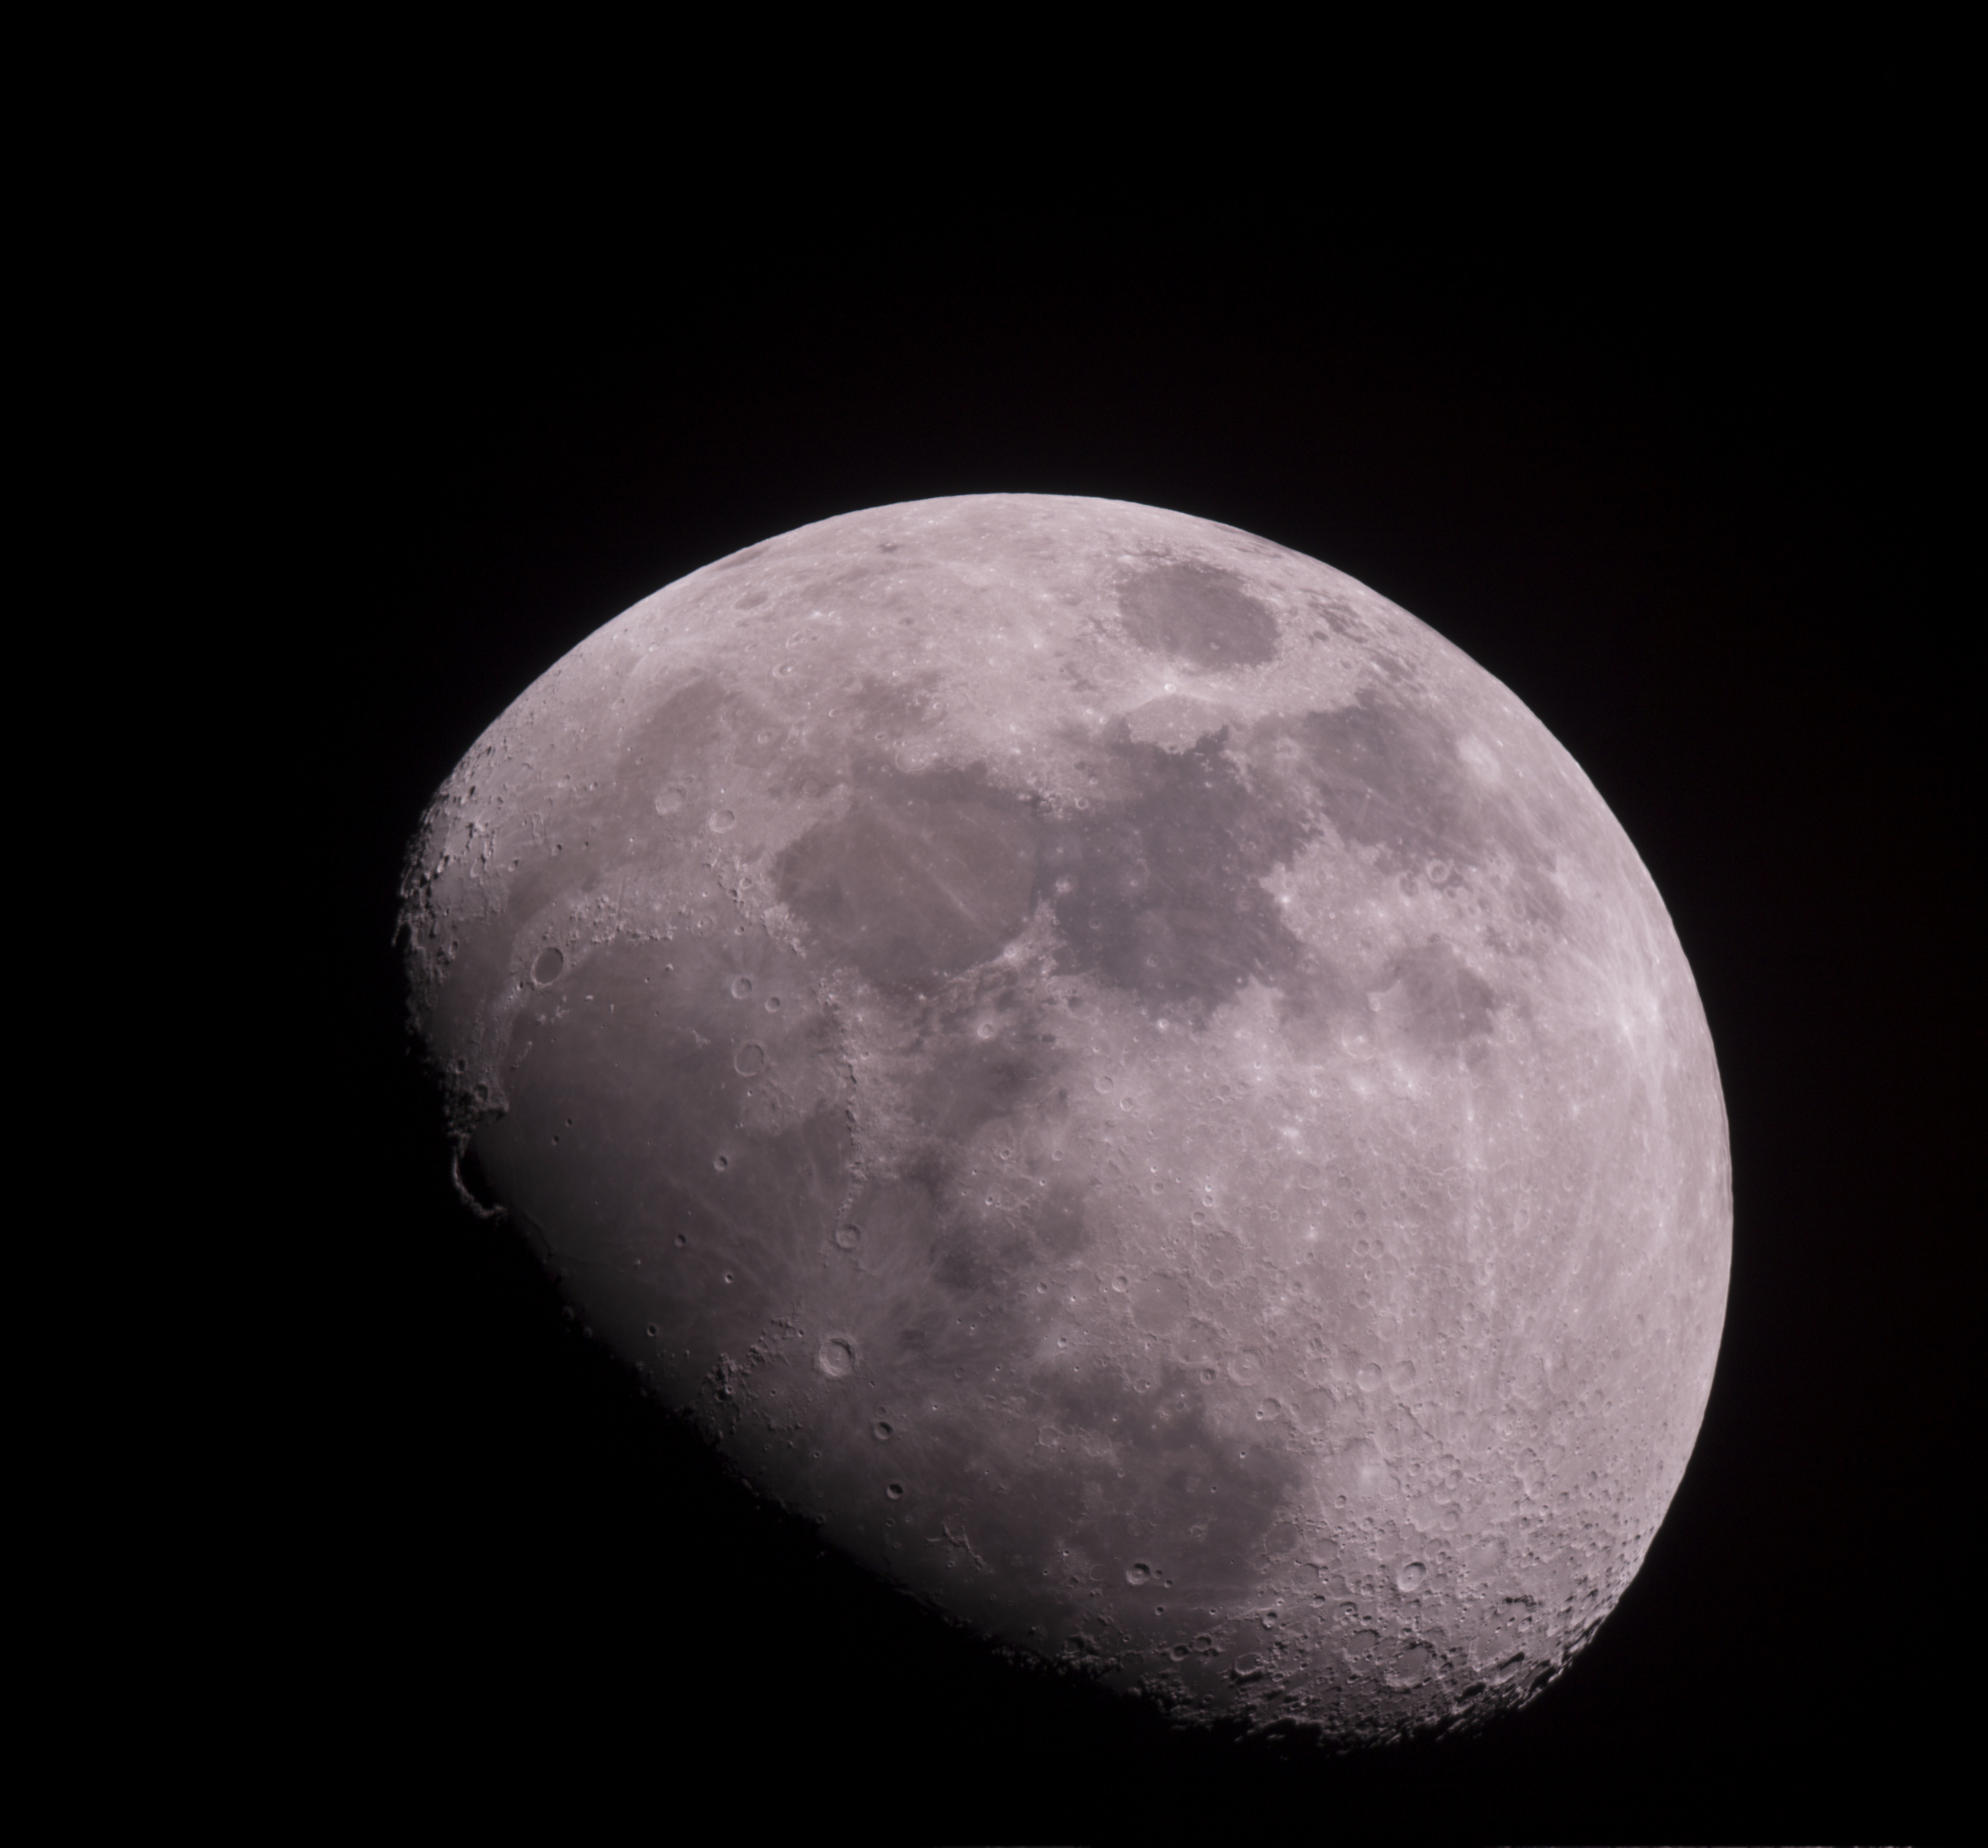 Lune25-02-2018_2019-08-12.png